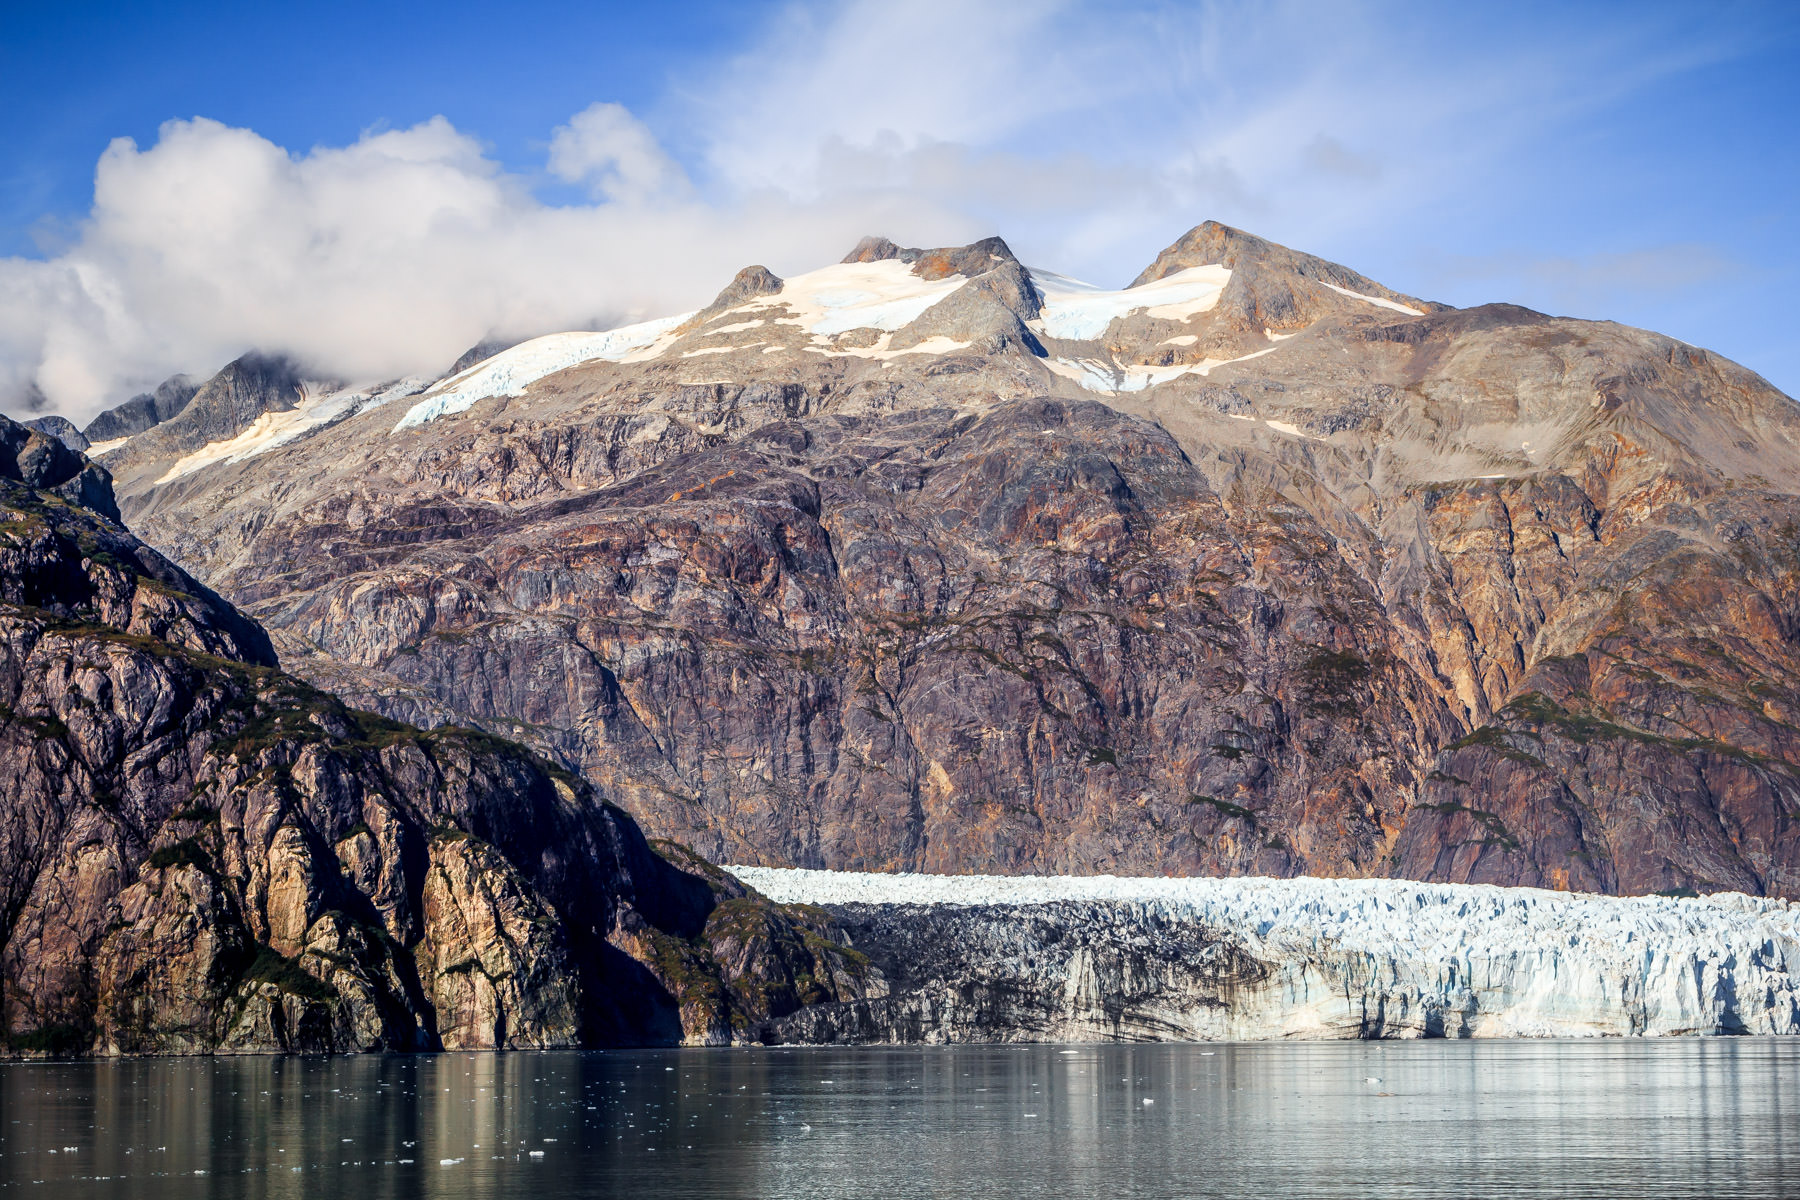 Lamplugh Glacier is dwarfed by 6,155 ft / 1,876 m tall Mount Cooper in Alaska's Glacier Bay.